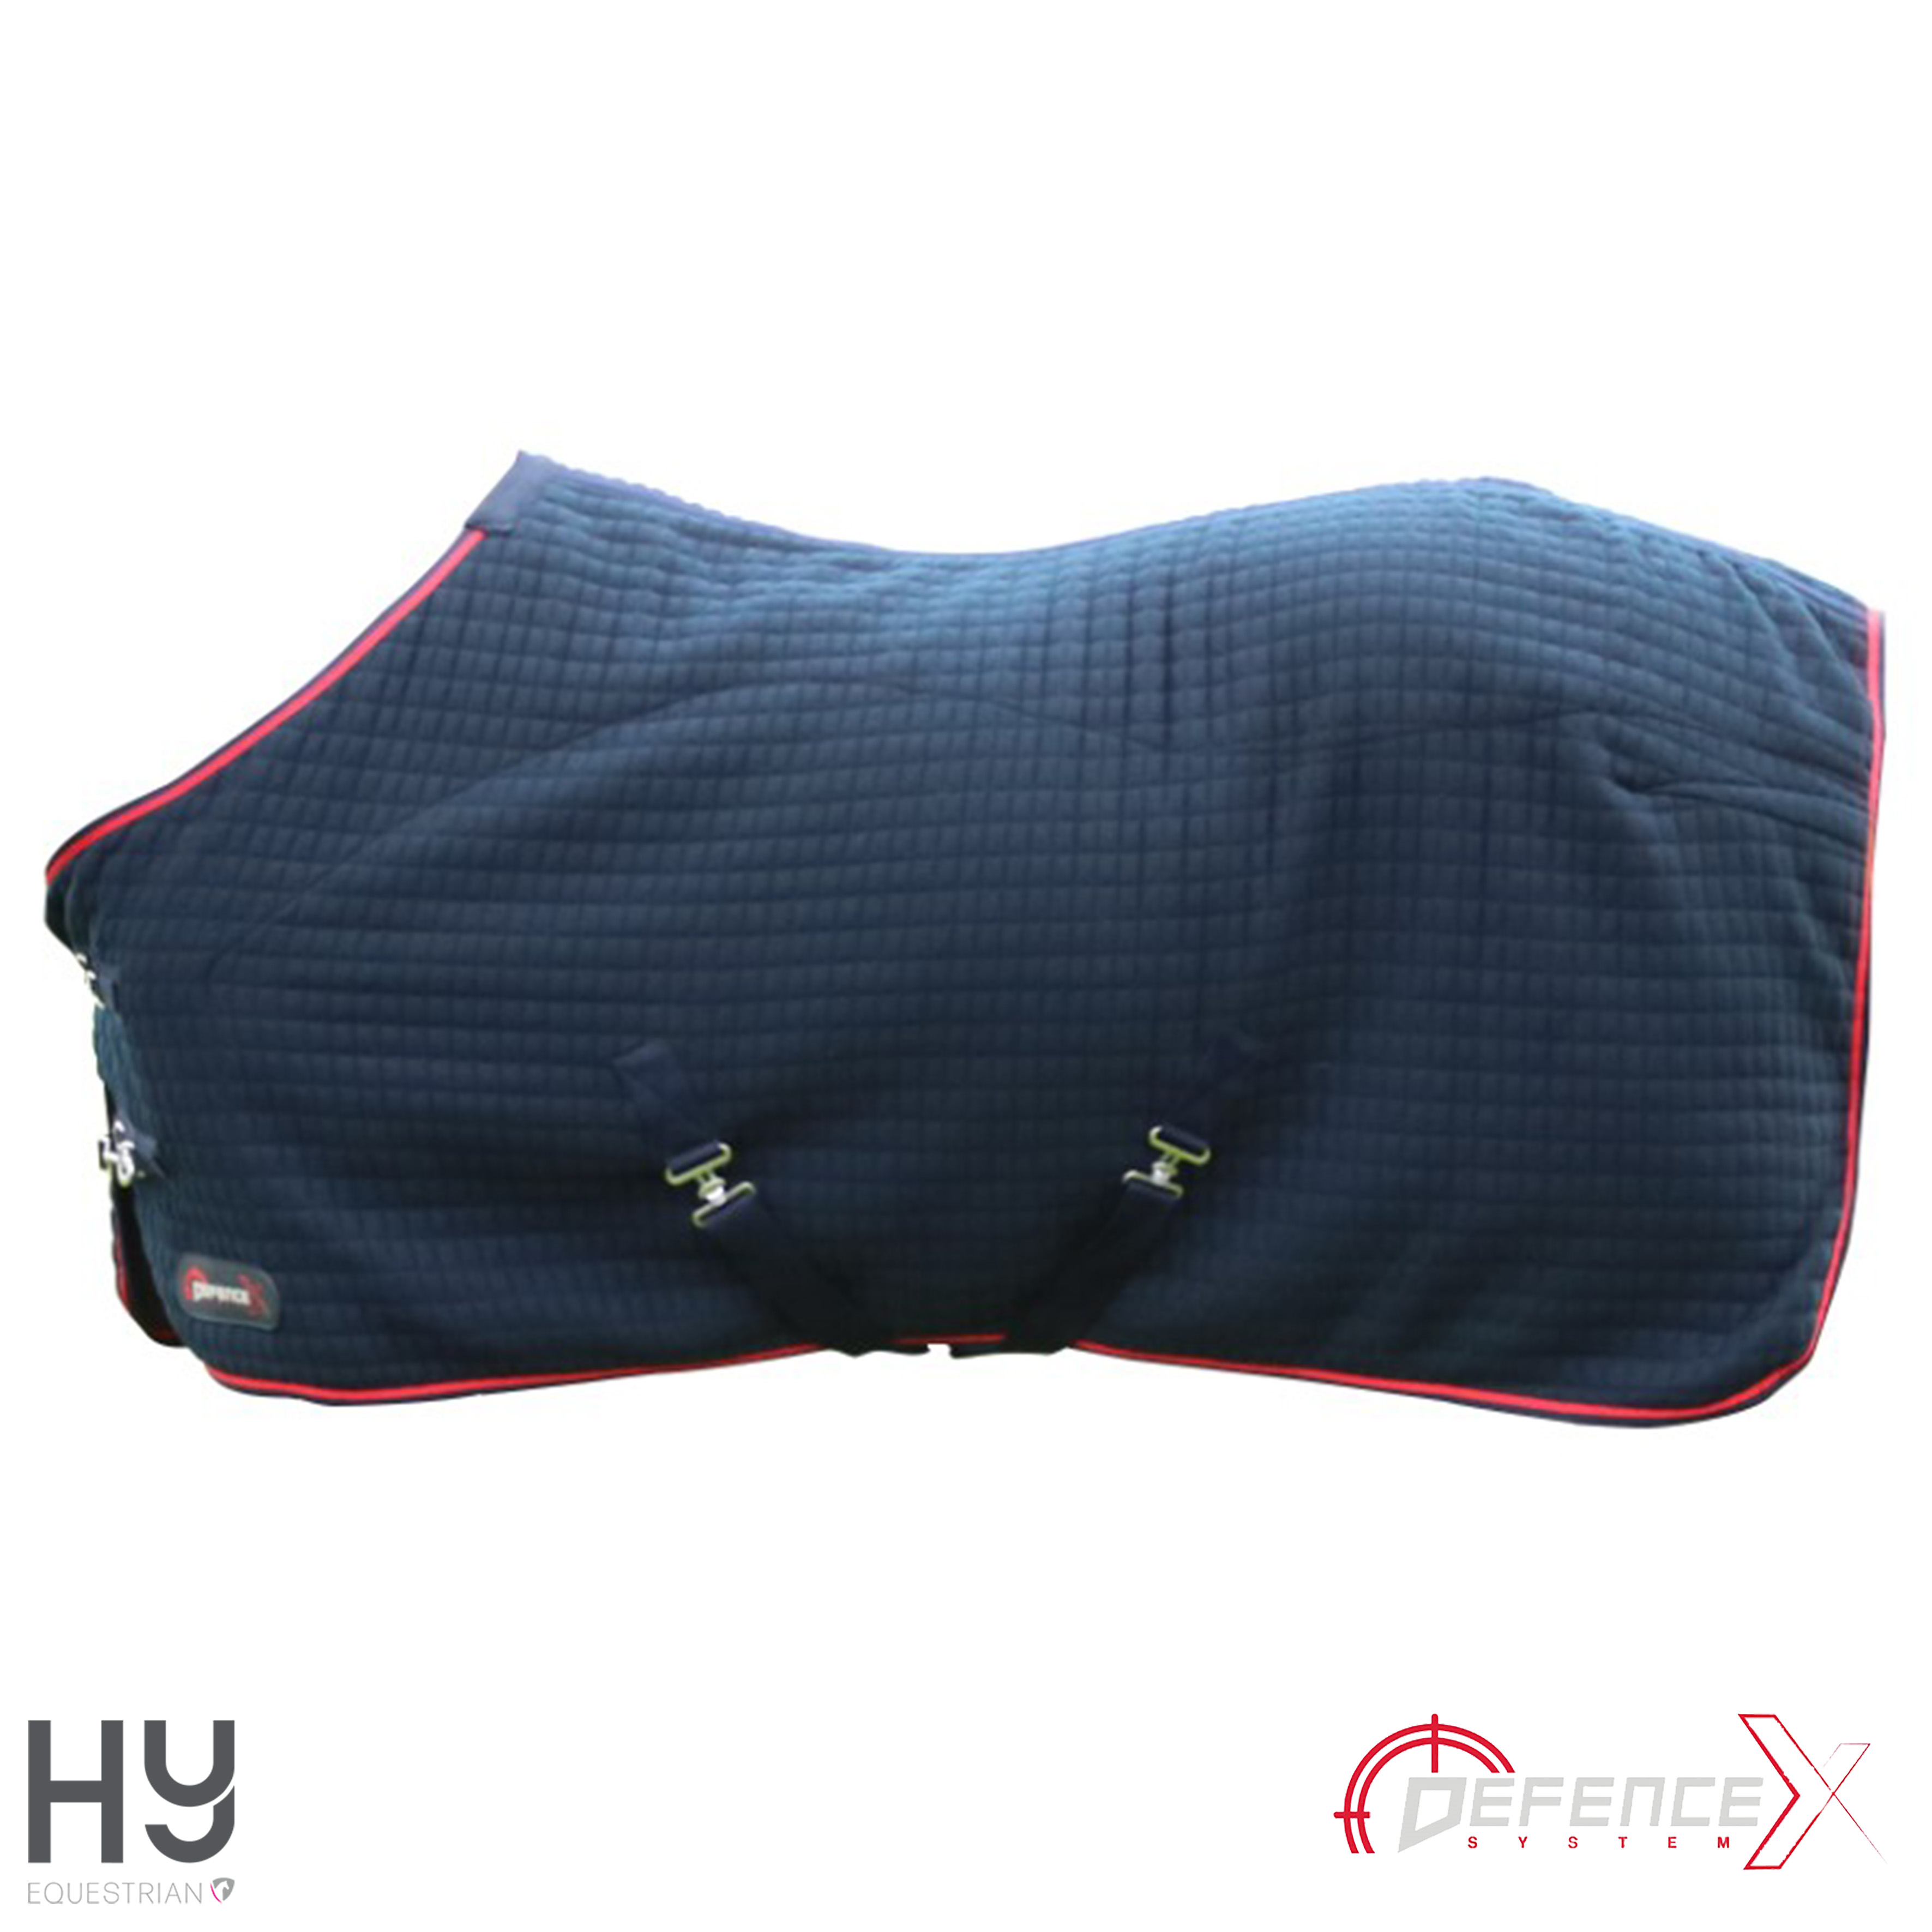 DefenceX System Cool Control Rug